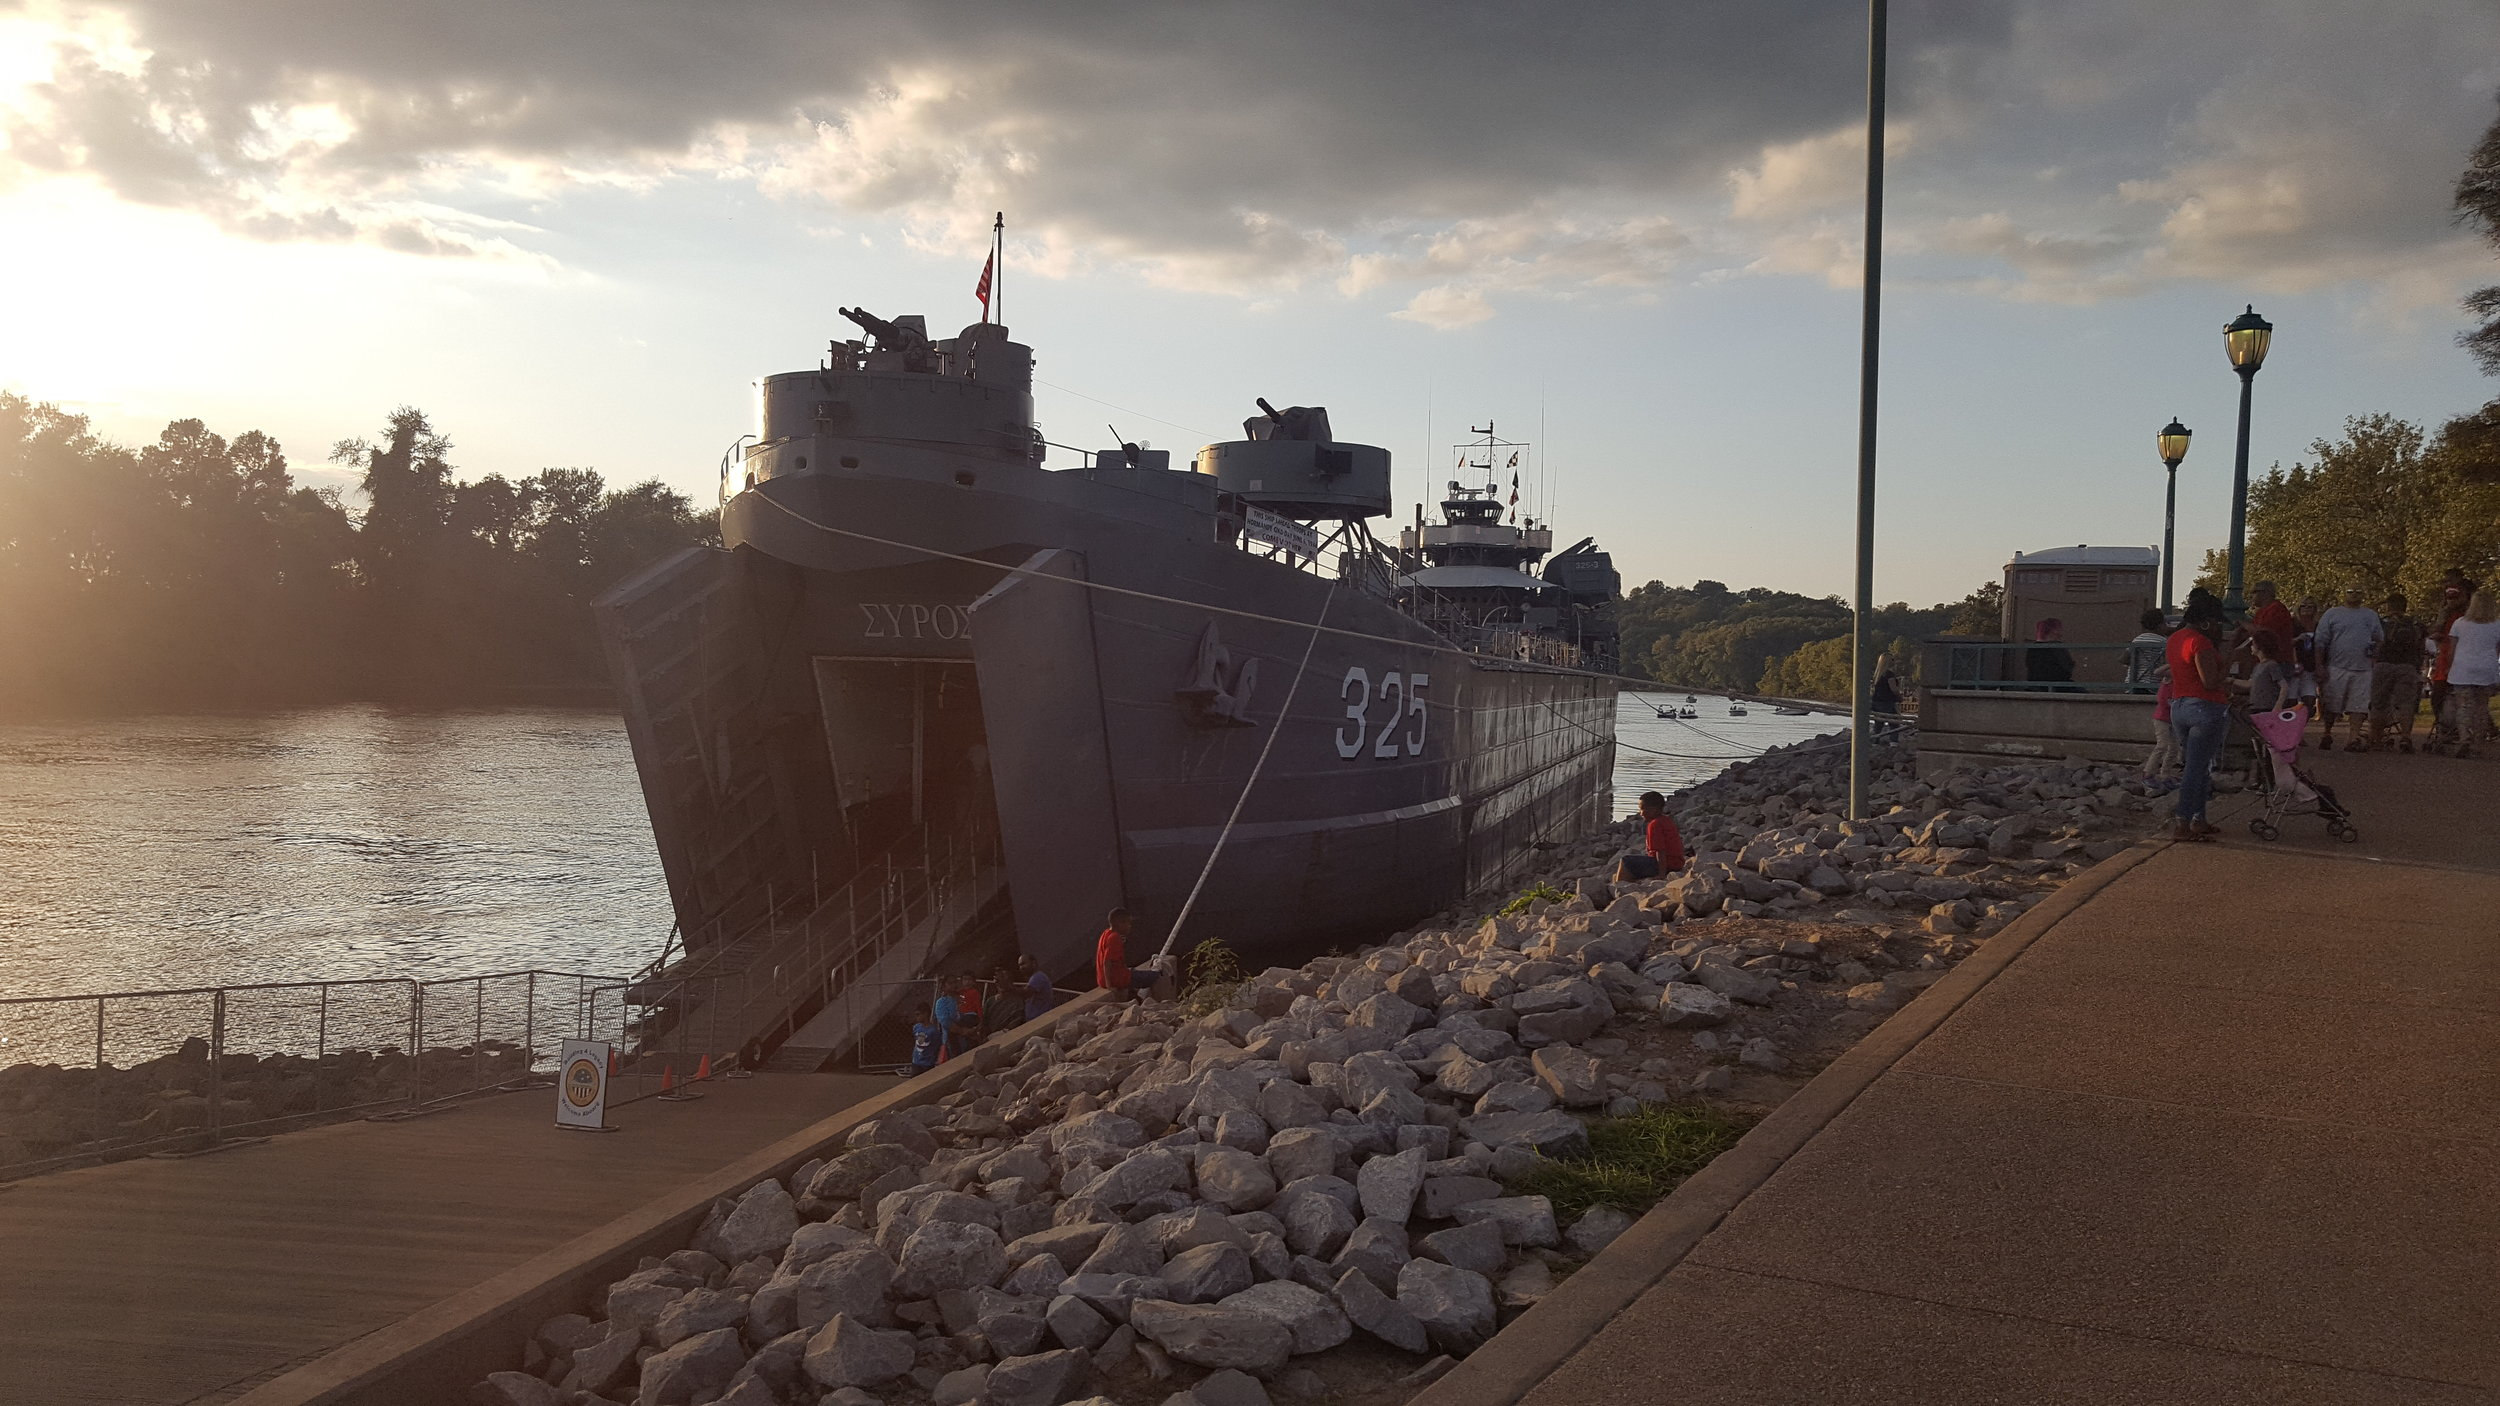 USS LST-325 visits Clarksville, Tennessee in September 2017. Photo: author.